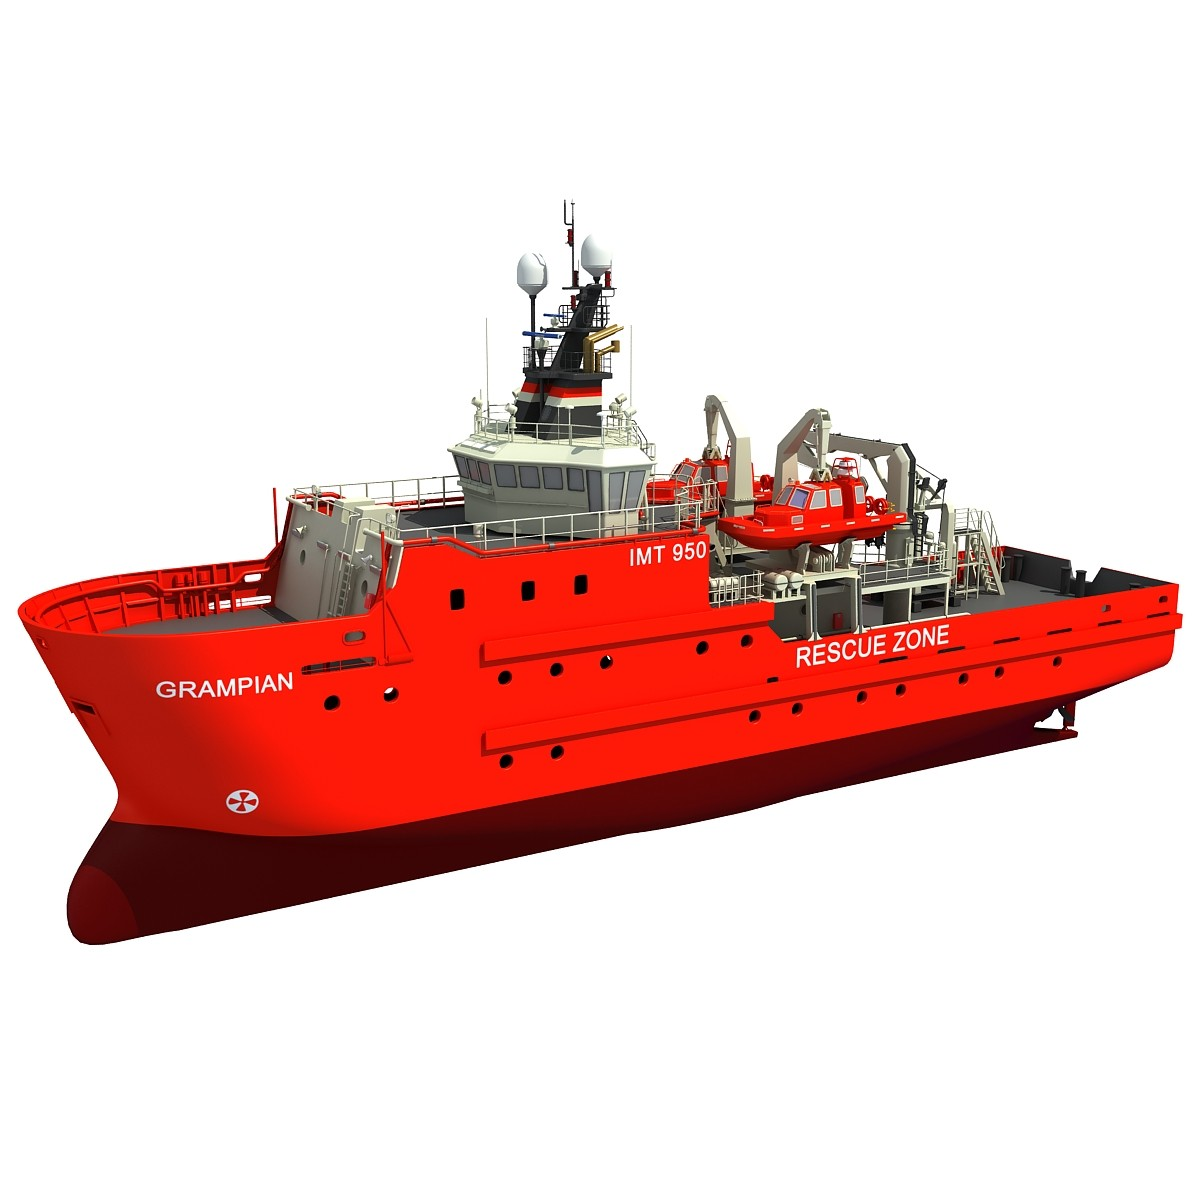 Grampian Defiance Emergency Response and Rescue Ship